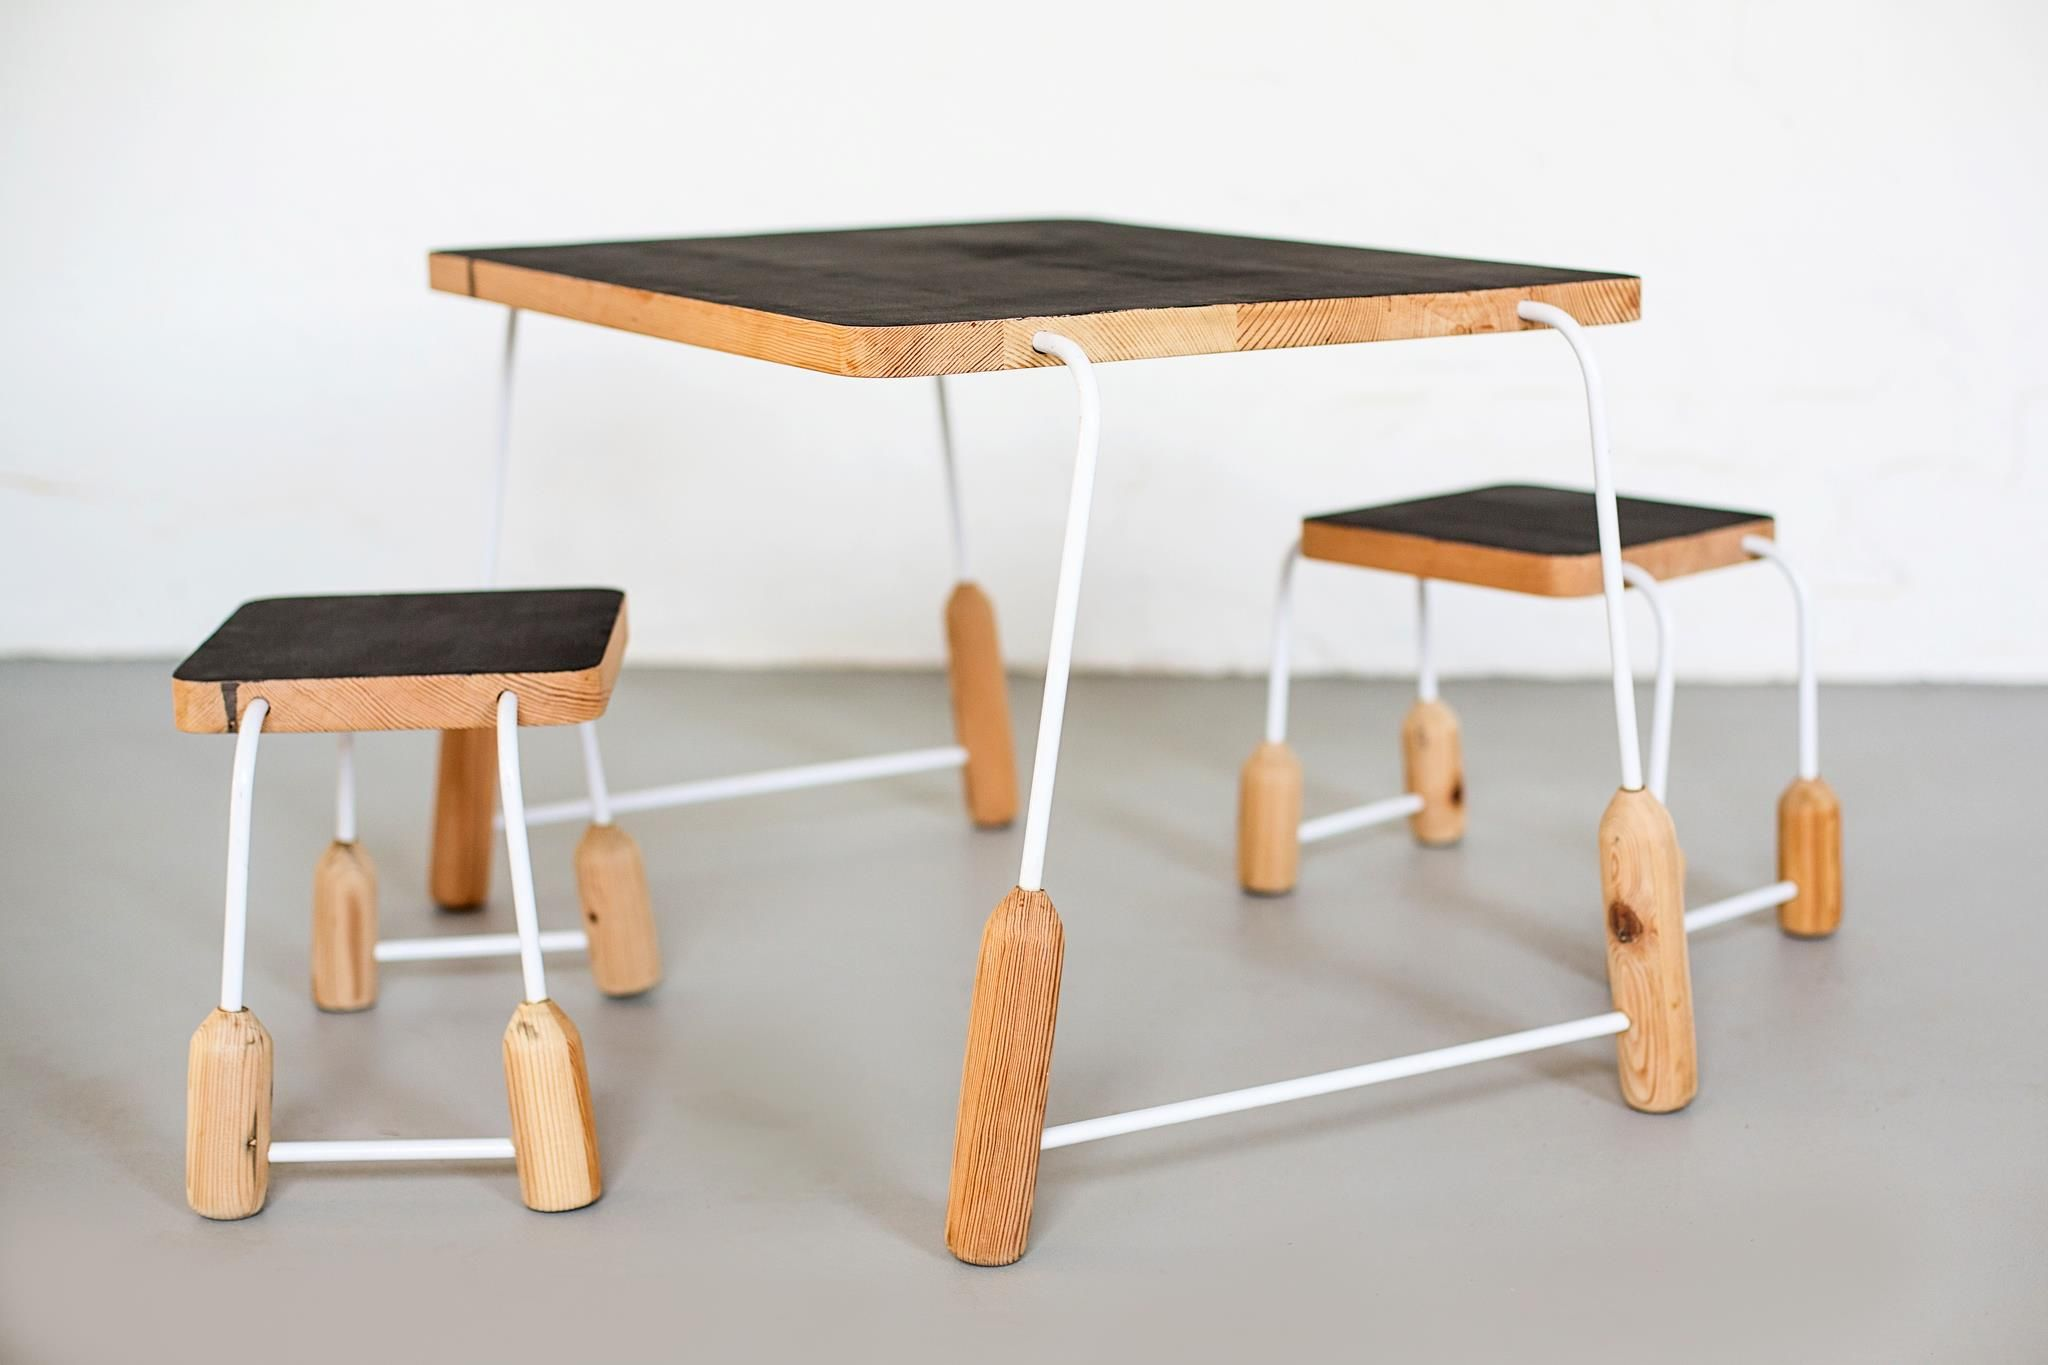 Milkshed takes reclaimed wood and transform it into adorable furniture pieces. ALL profits are donated to worthy causes ǀ via The Design Tabloid